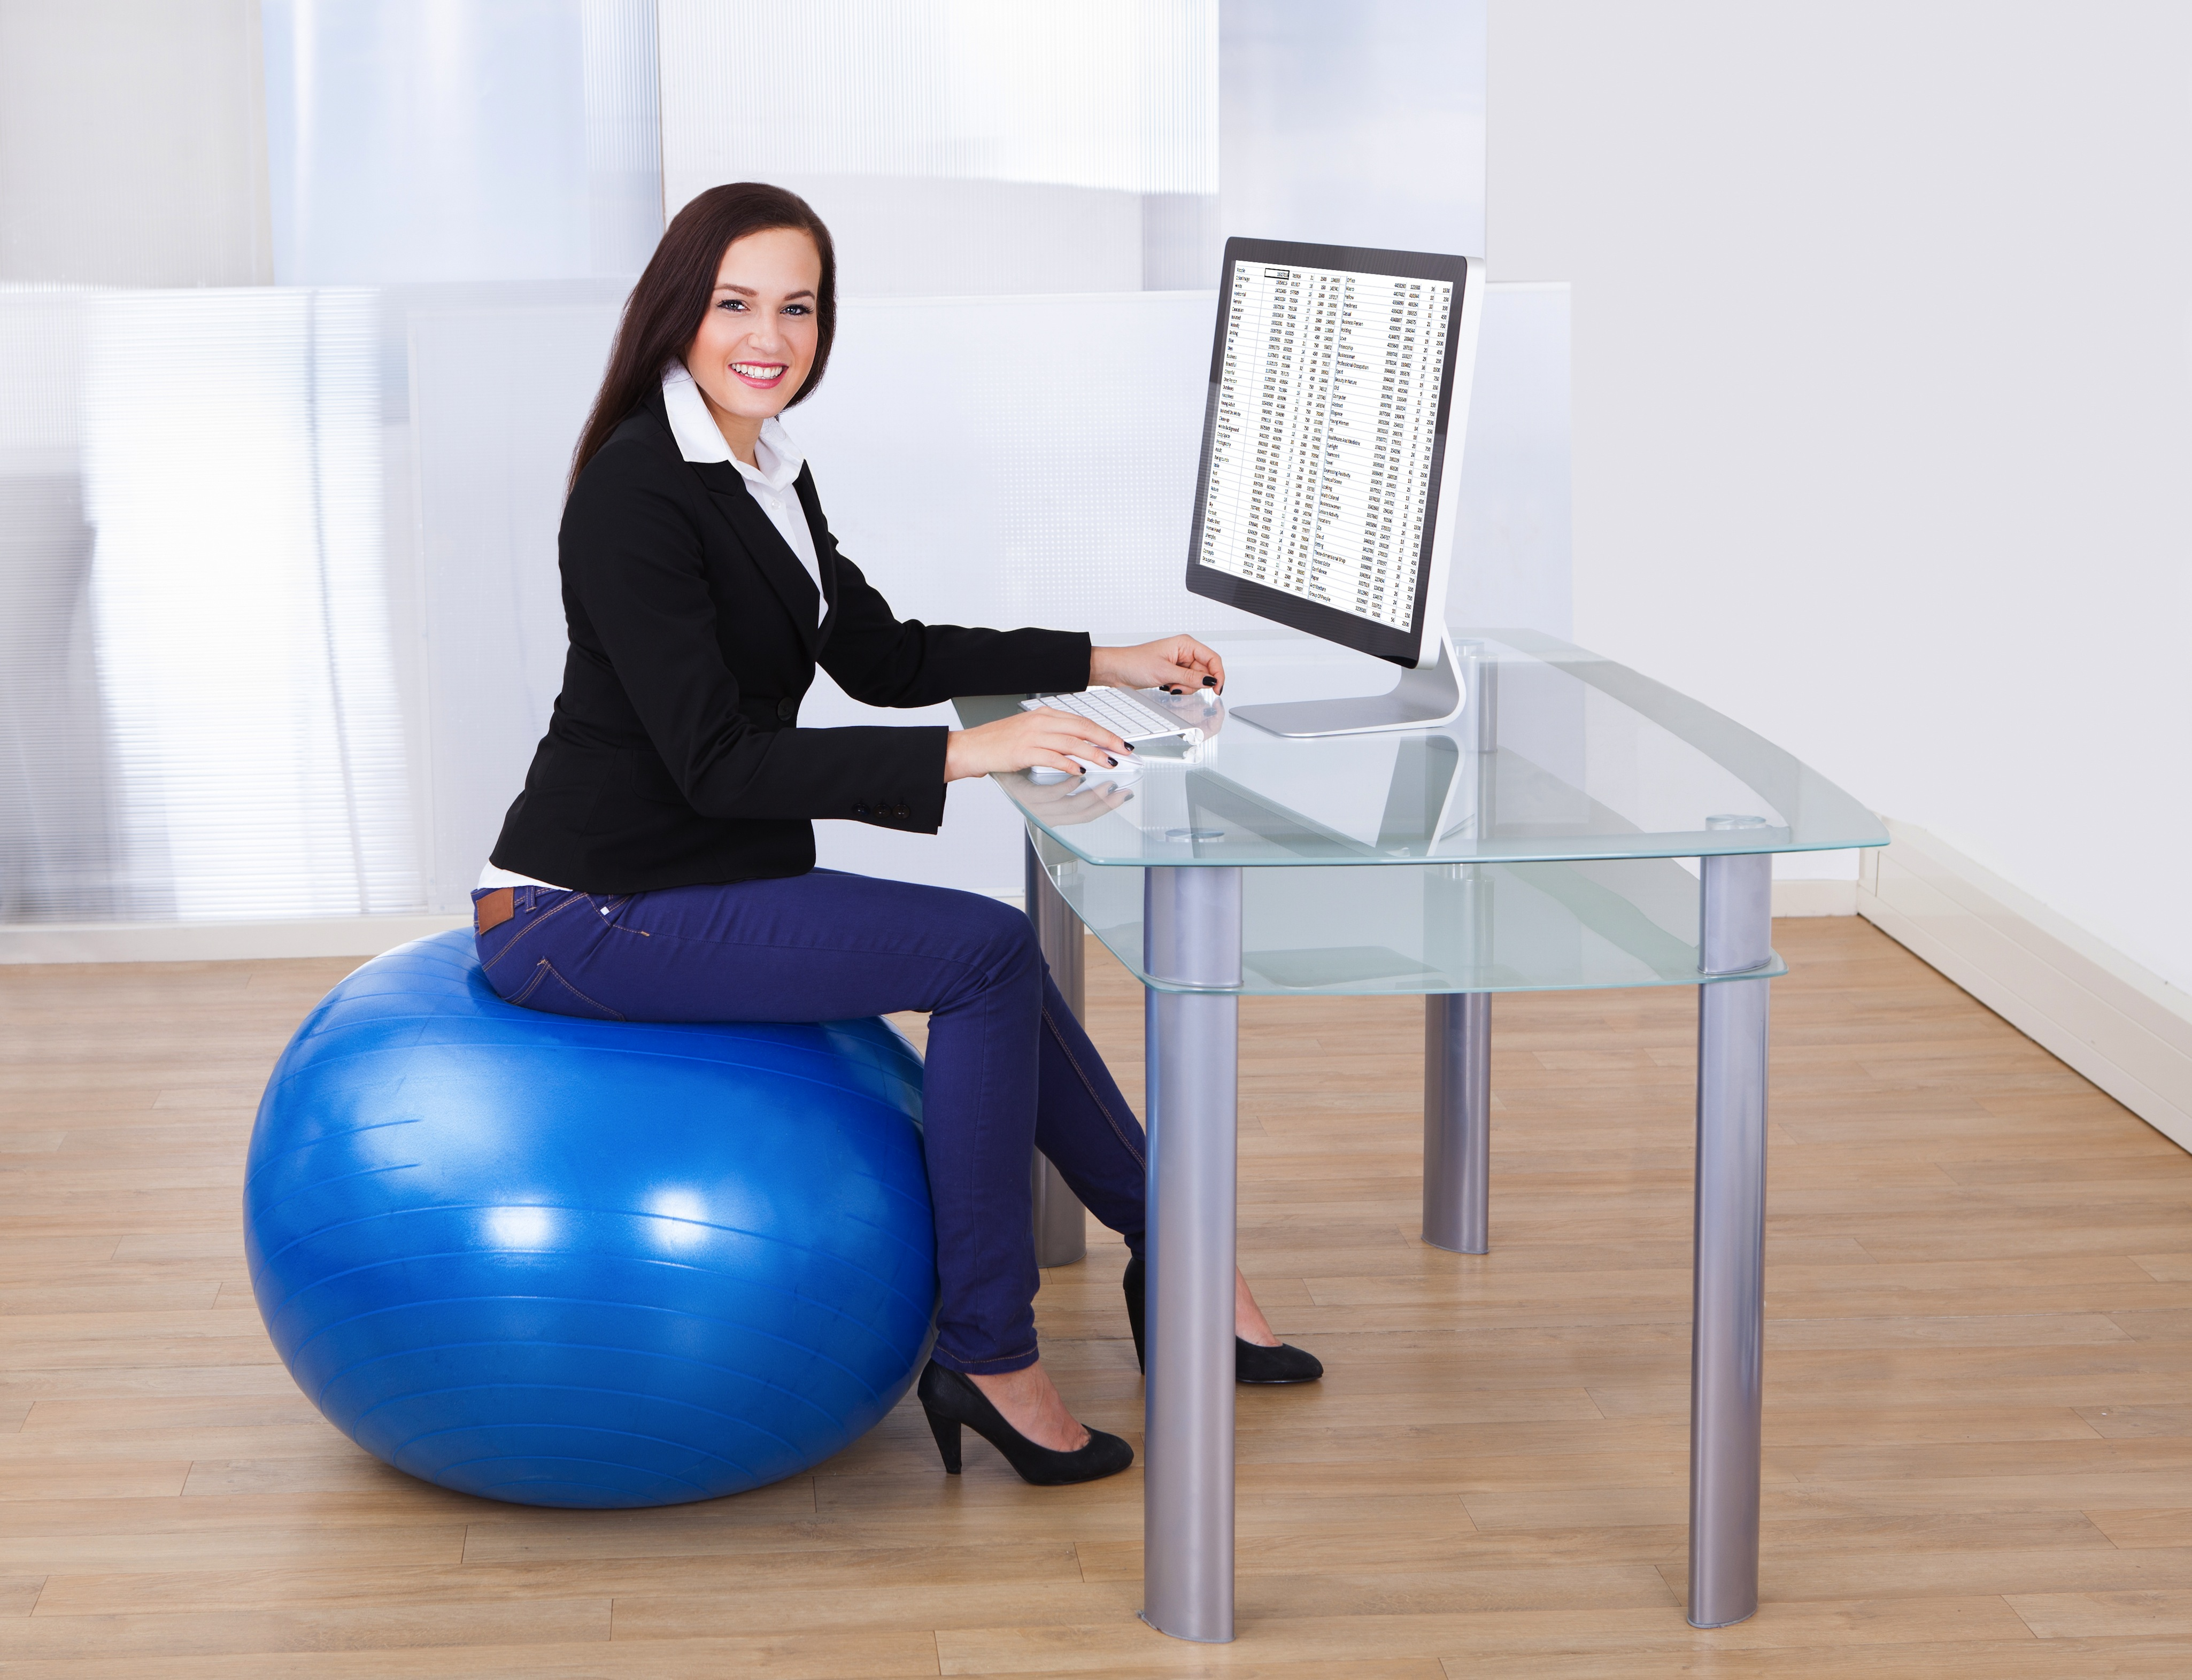 corporate office gym design 7 benefits of using fitness ball as